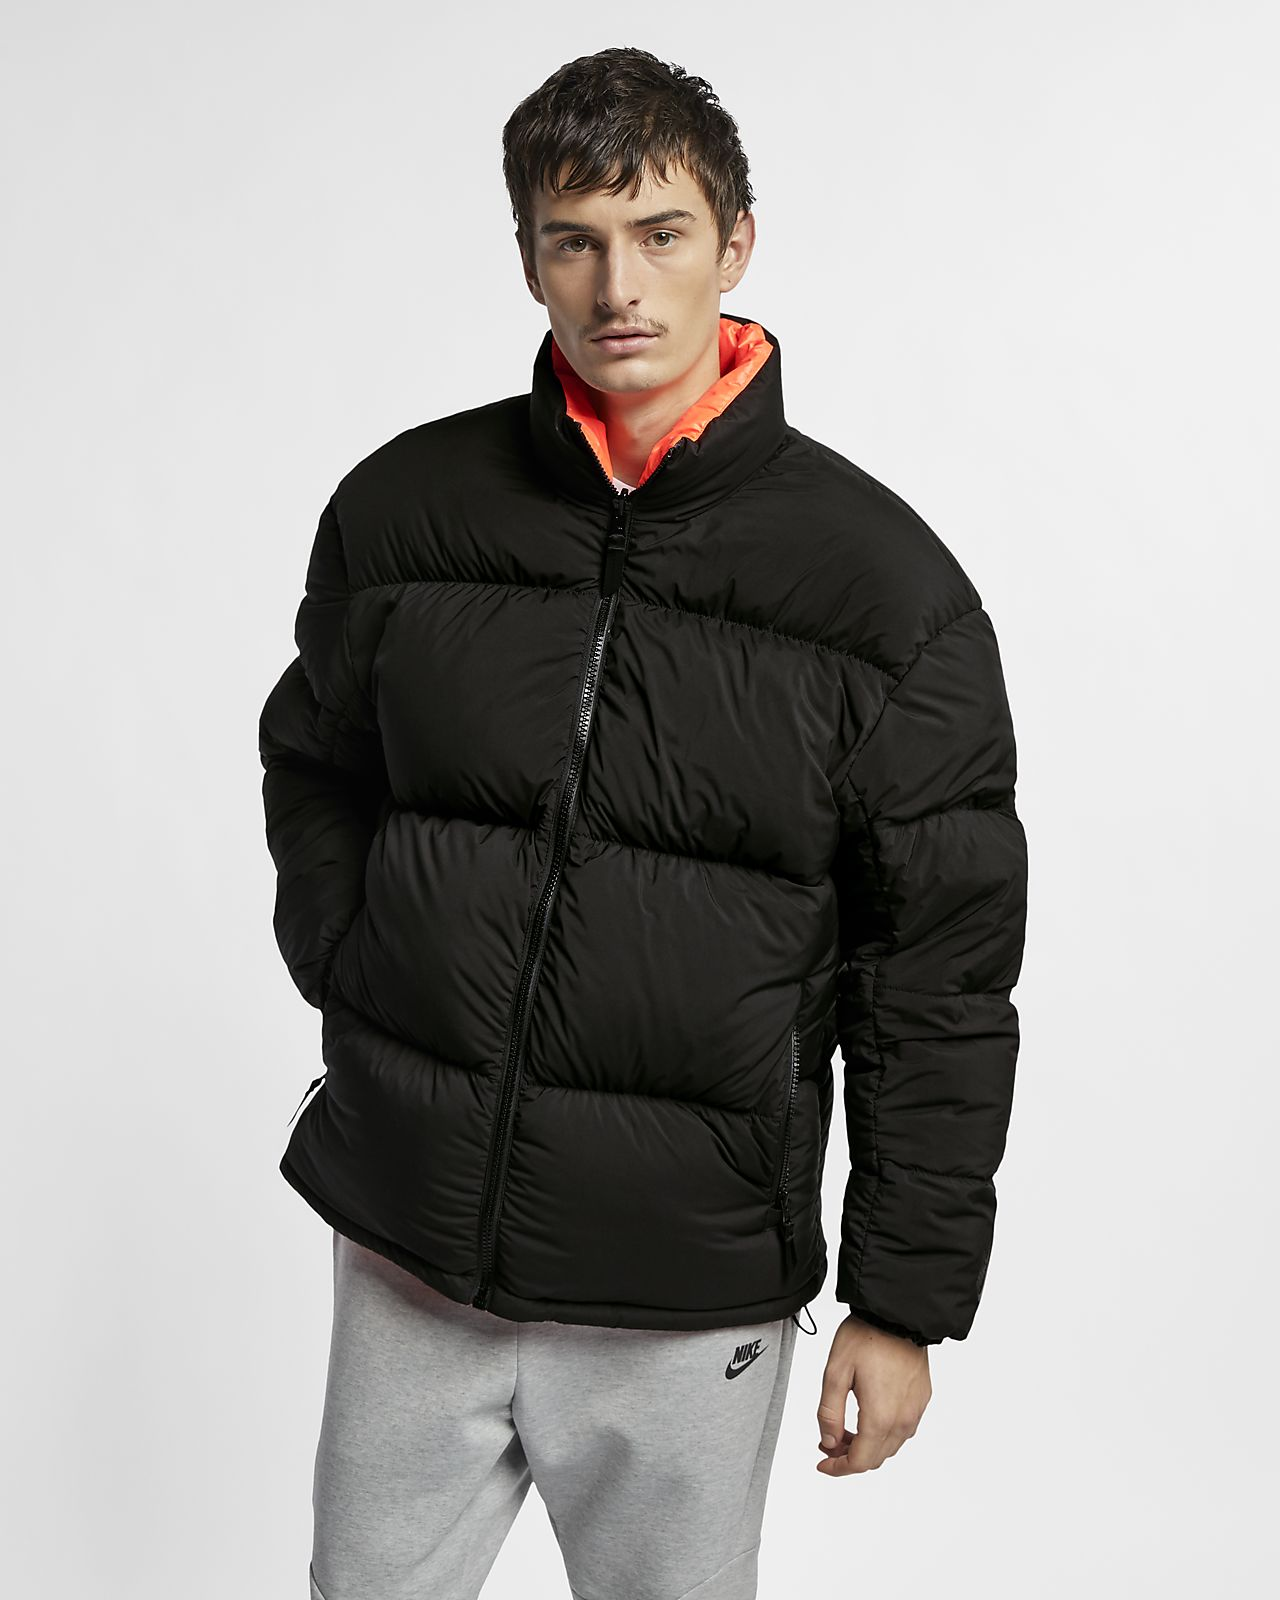 NikeLab Collection Puffer 男子夹克